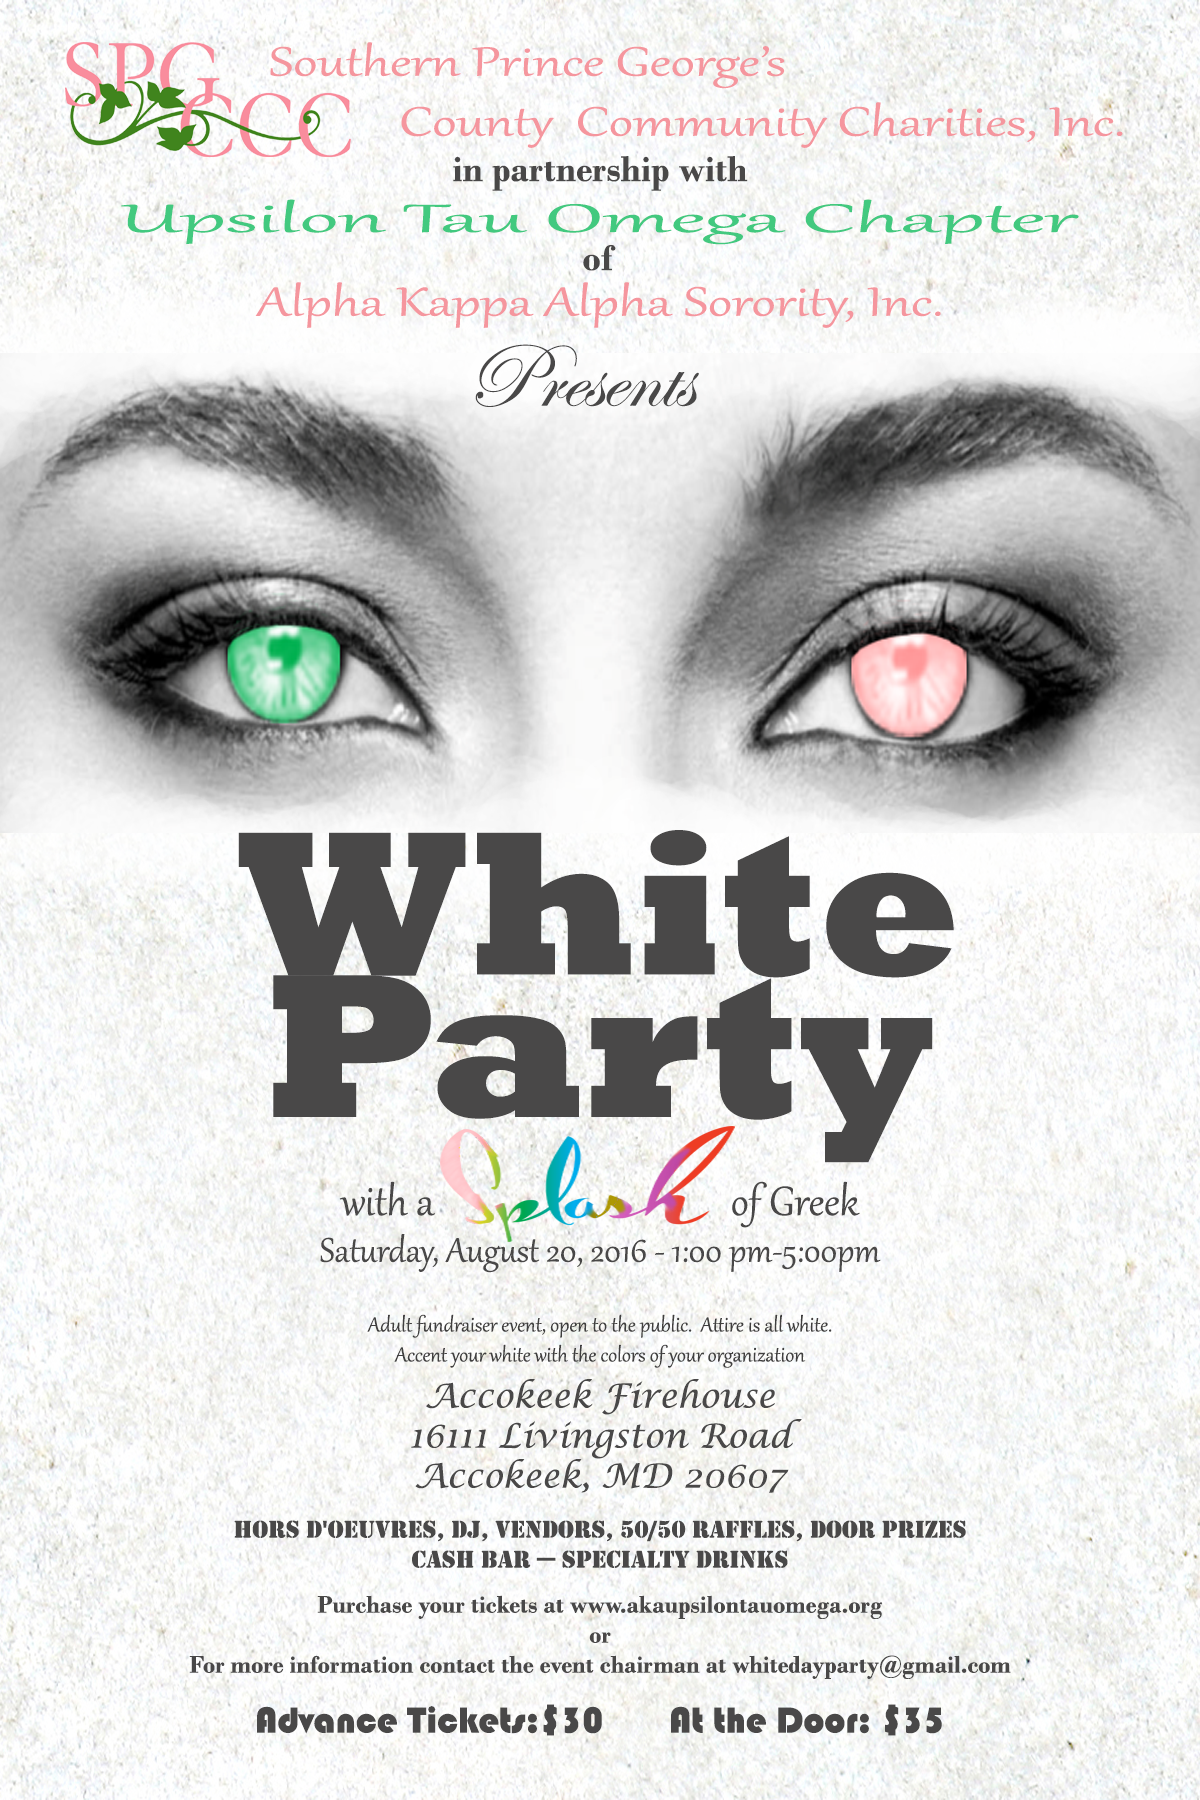 White Party with a Splash of Greek